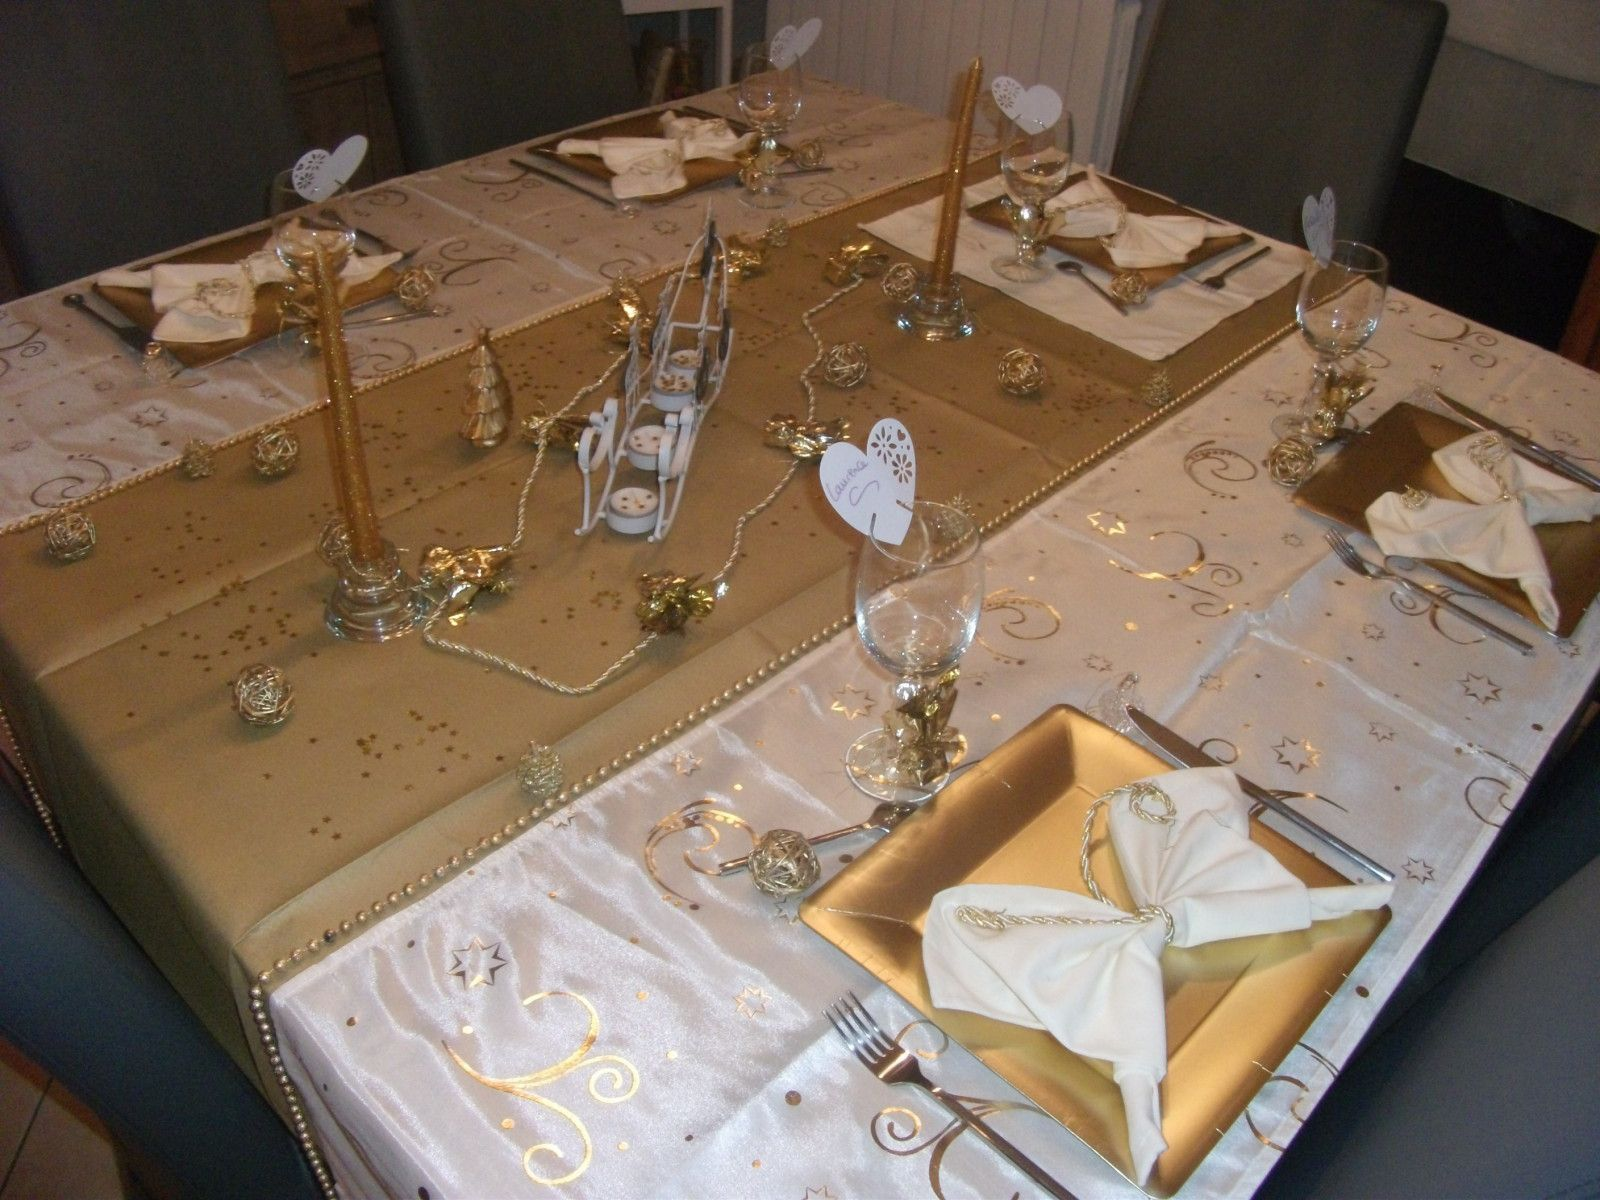 Album table de la saint sylvestre 2010 le blog de - Table reveillon saint sylvestre ...